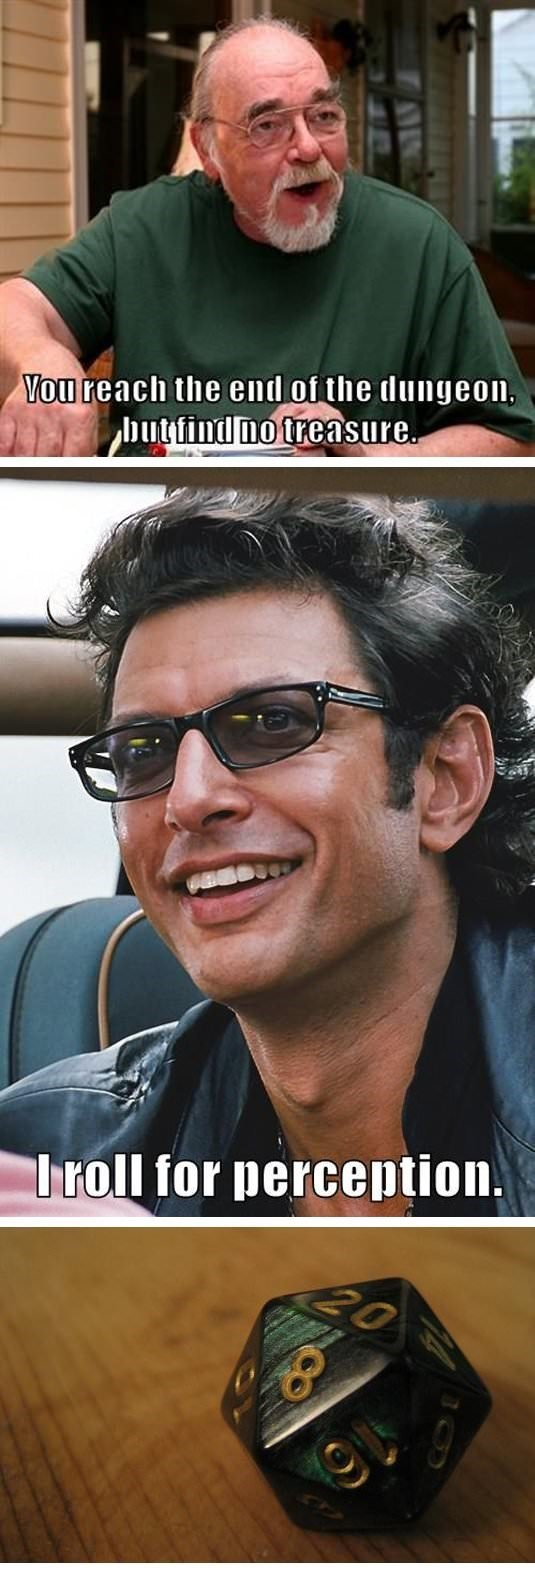 dd meme about Jeff Goldblum rolling high on perception to find treasure